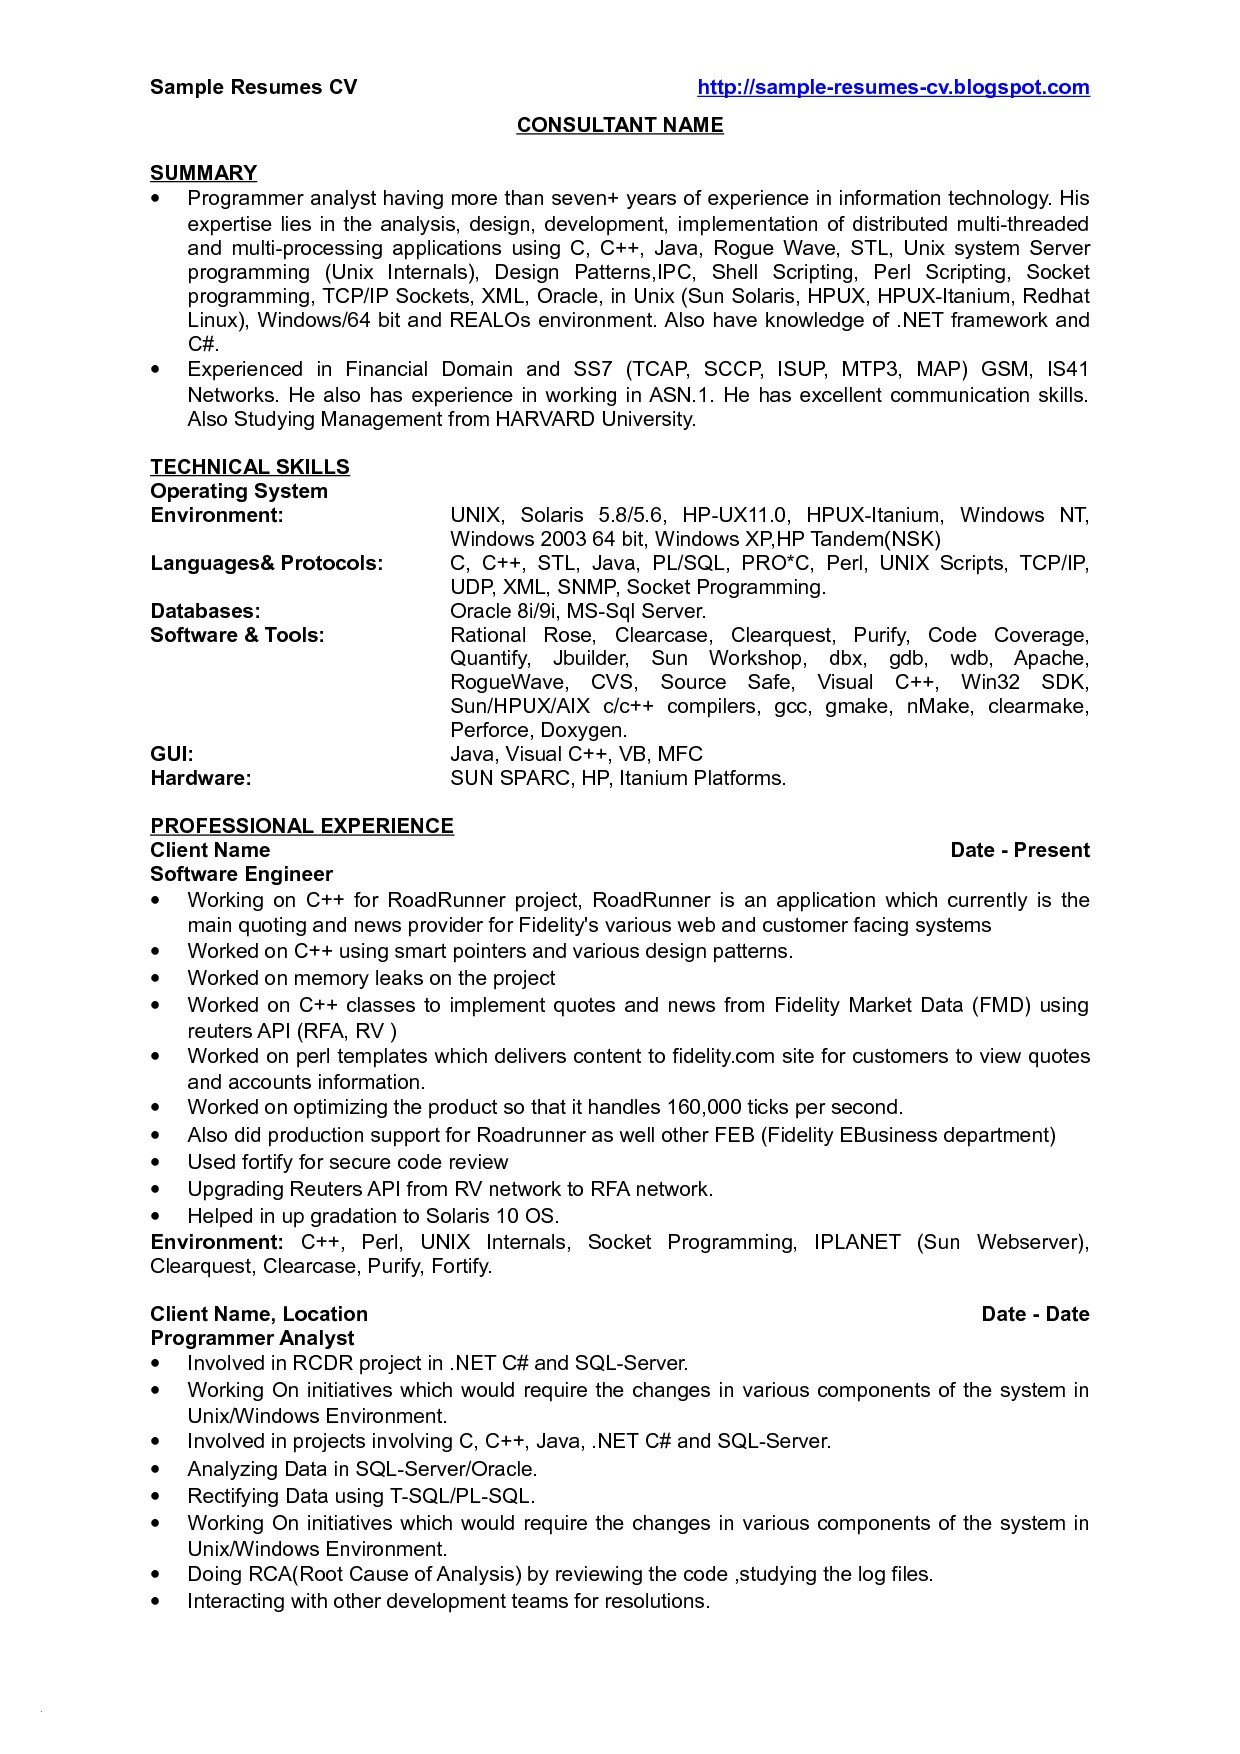 Junior Java Developer Resume - 21 New Junior Java Developer Resume